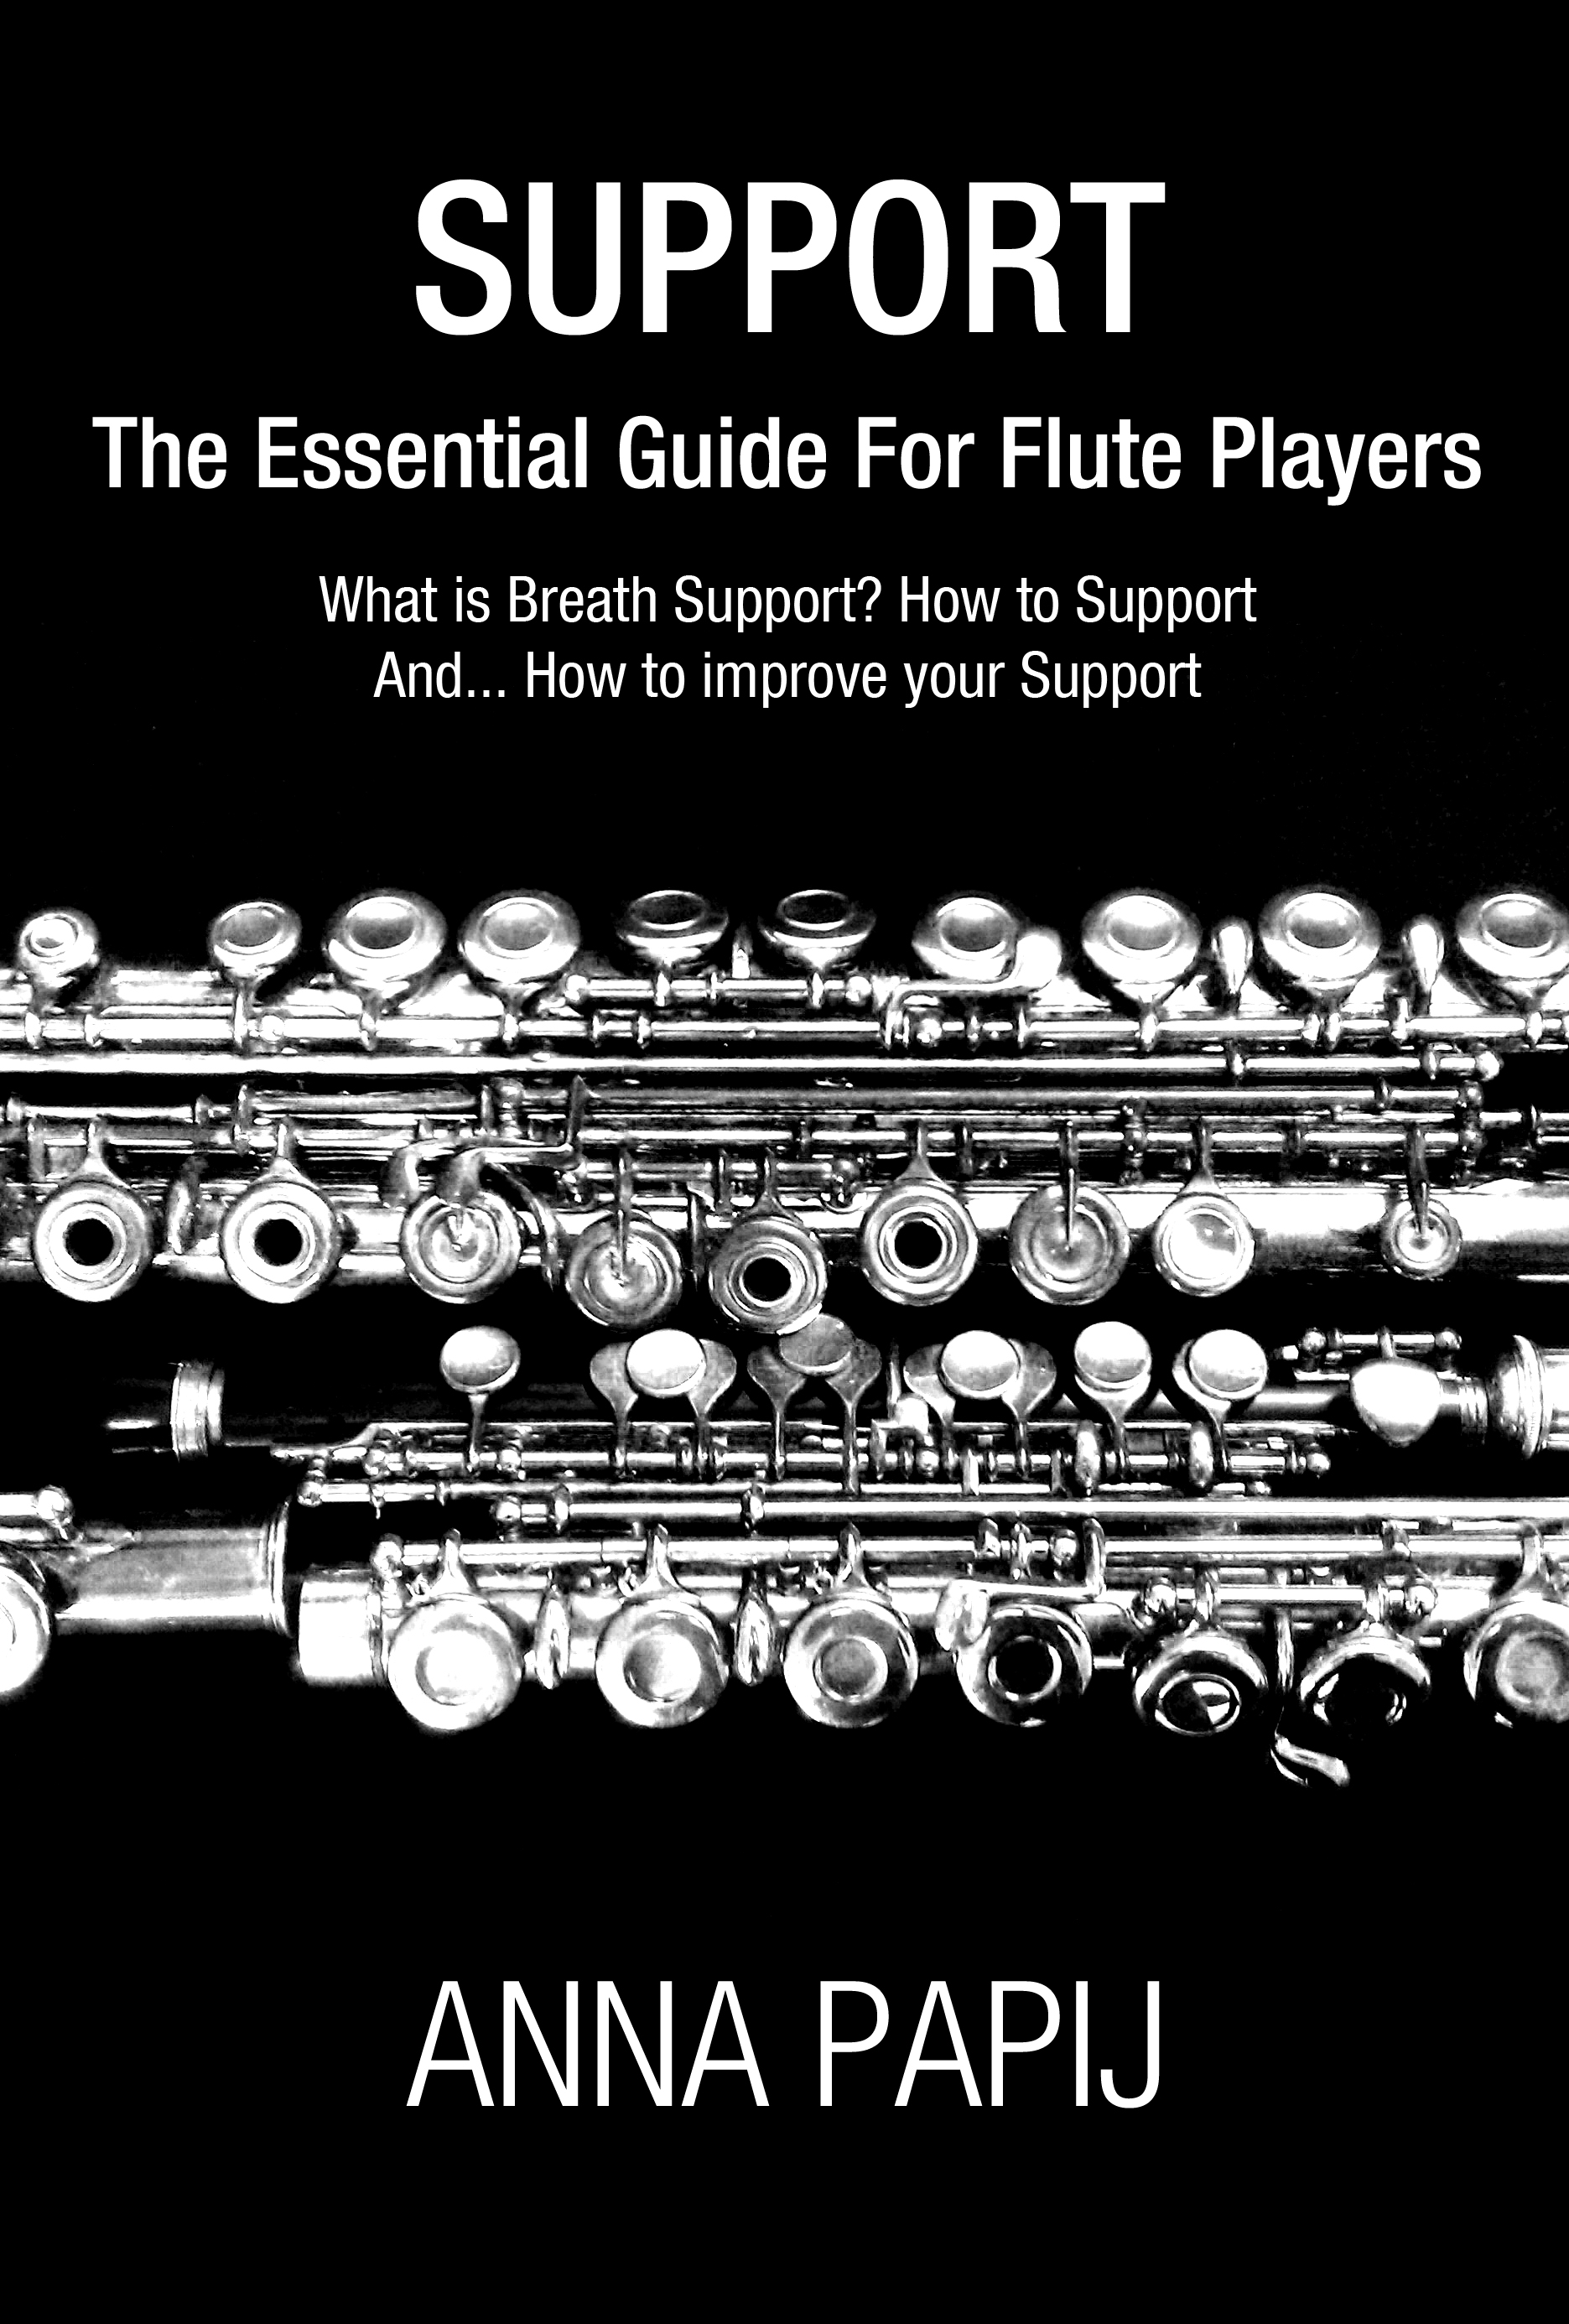 SUPPORT - The Essential Guide For Flute Players